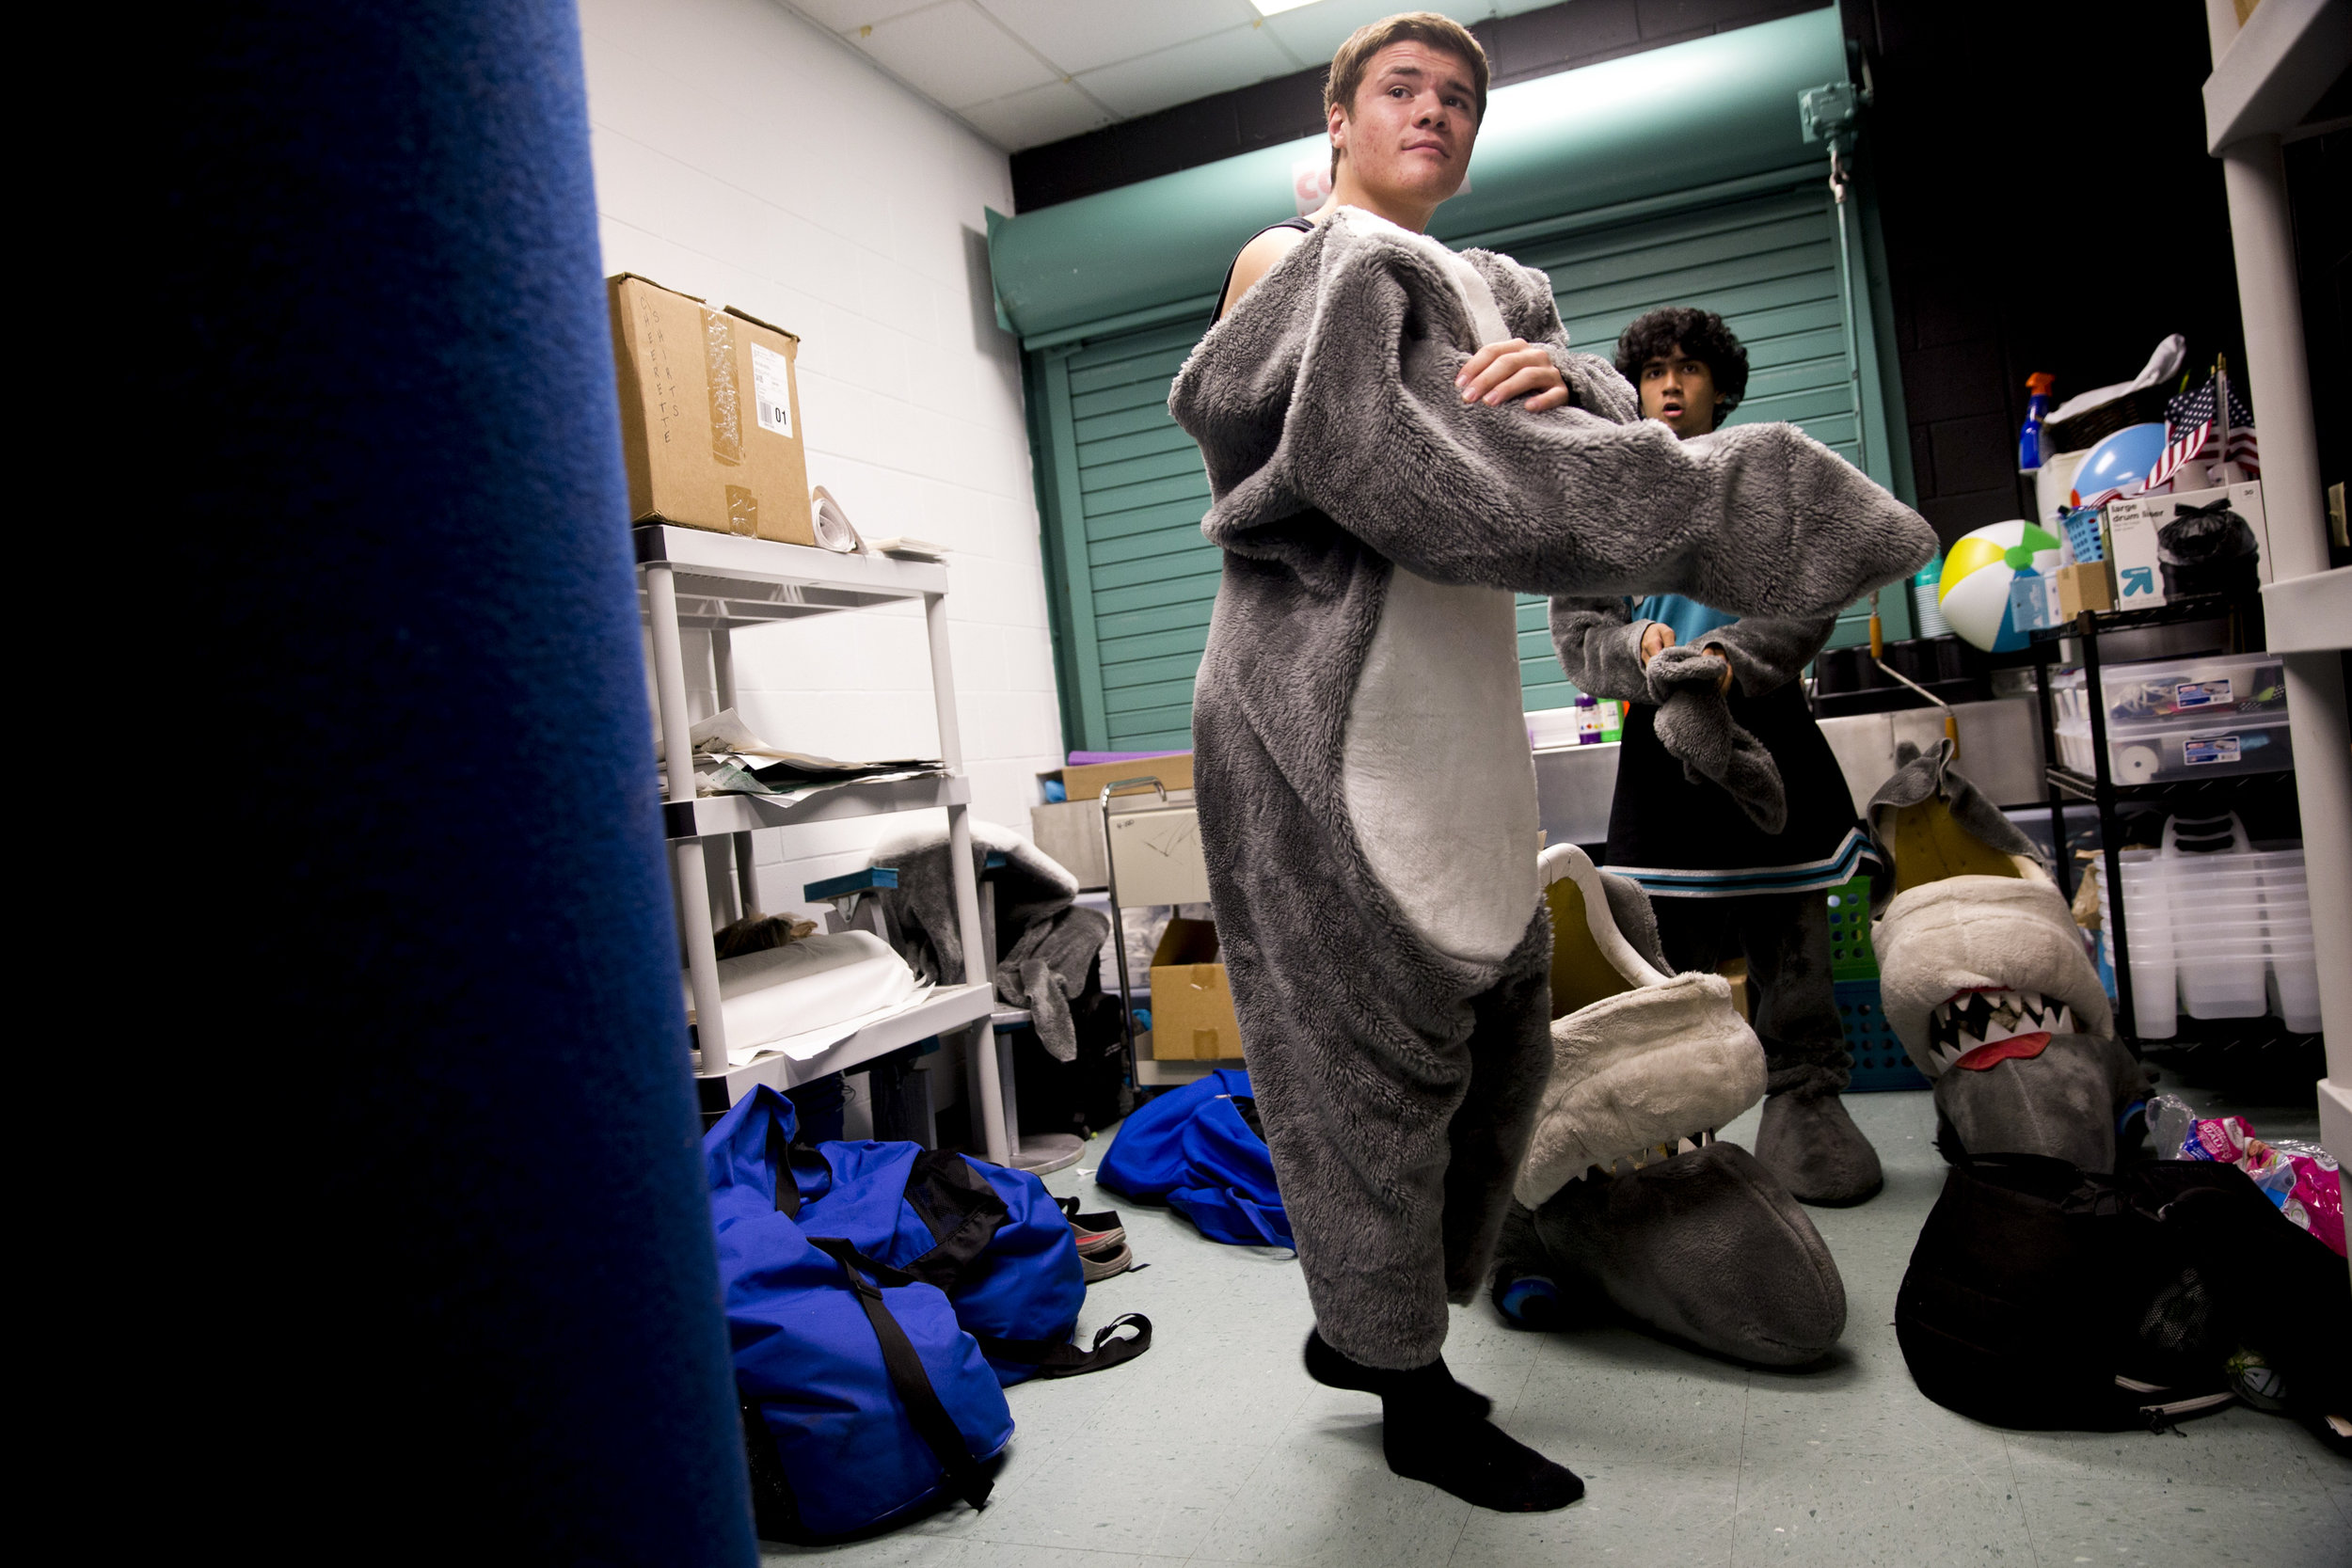 Gulf Coast High School juniors Dylan Spelman, 16, left, and Matthew Masin, 17, adorn the costumes for the school's mascots Sharkey and Sharkette, respectively, prior to a football game against Hialeah High School Friday, September 2, 2016 at Gulf Coast High School in Naples. The two have embraced the role since last year's homecoming game and have brought a new energy and commitment to the school's icon.